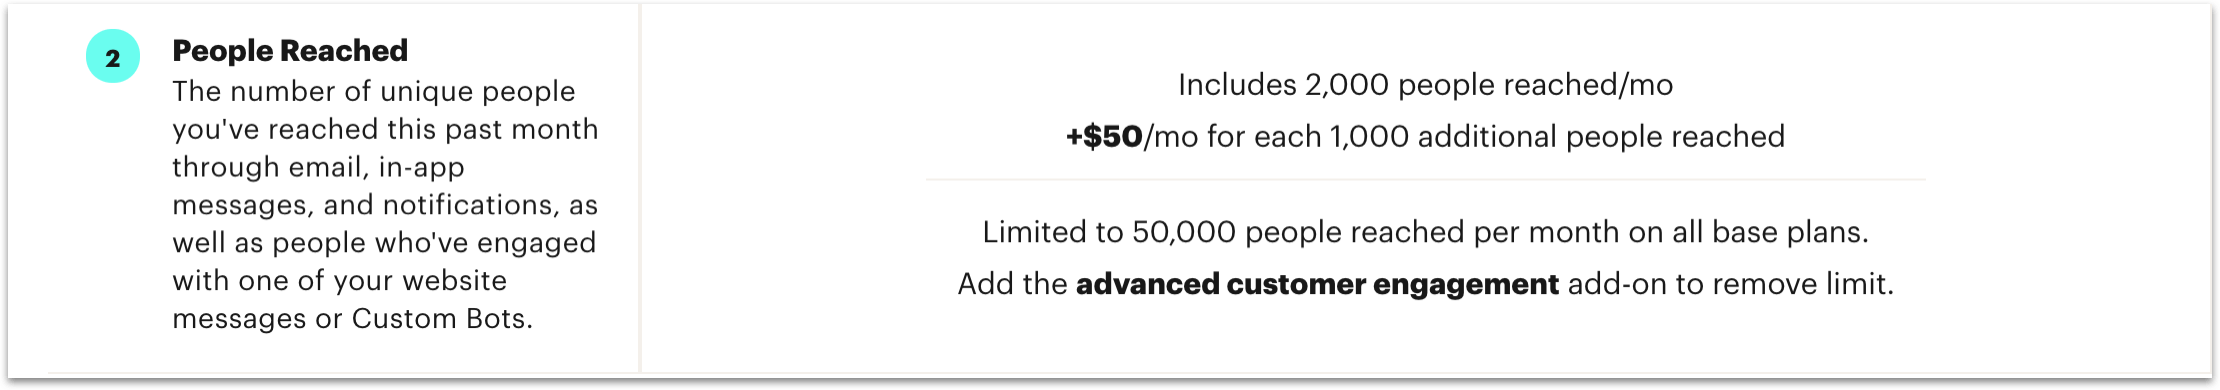 Intercom prices on people reached per month